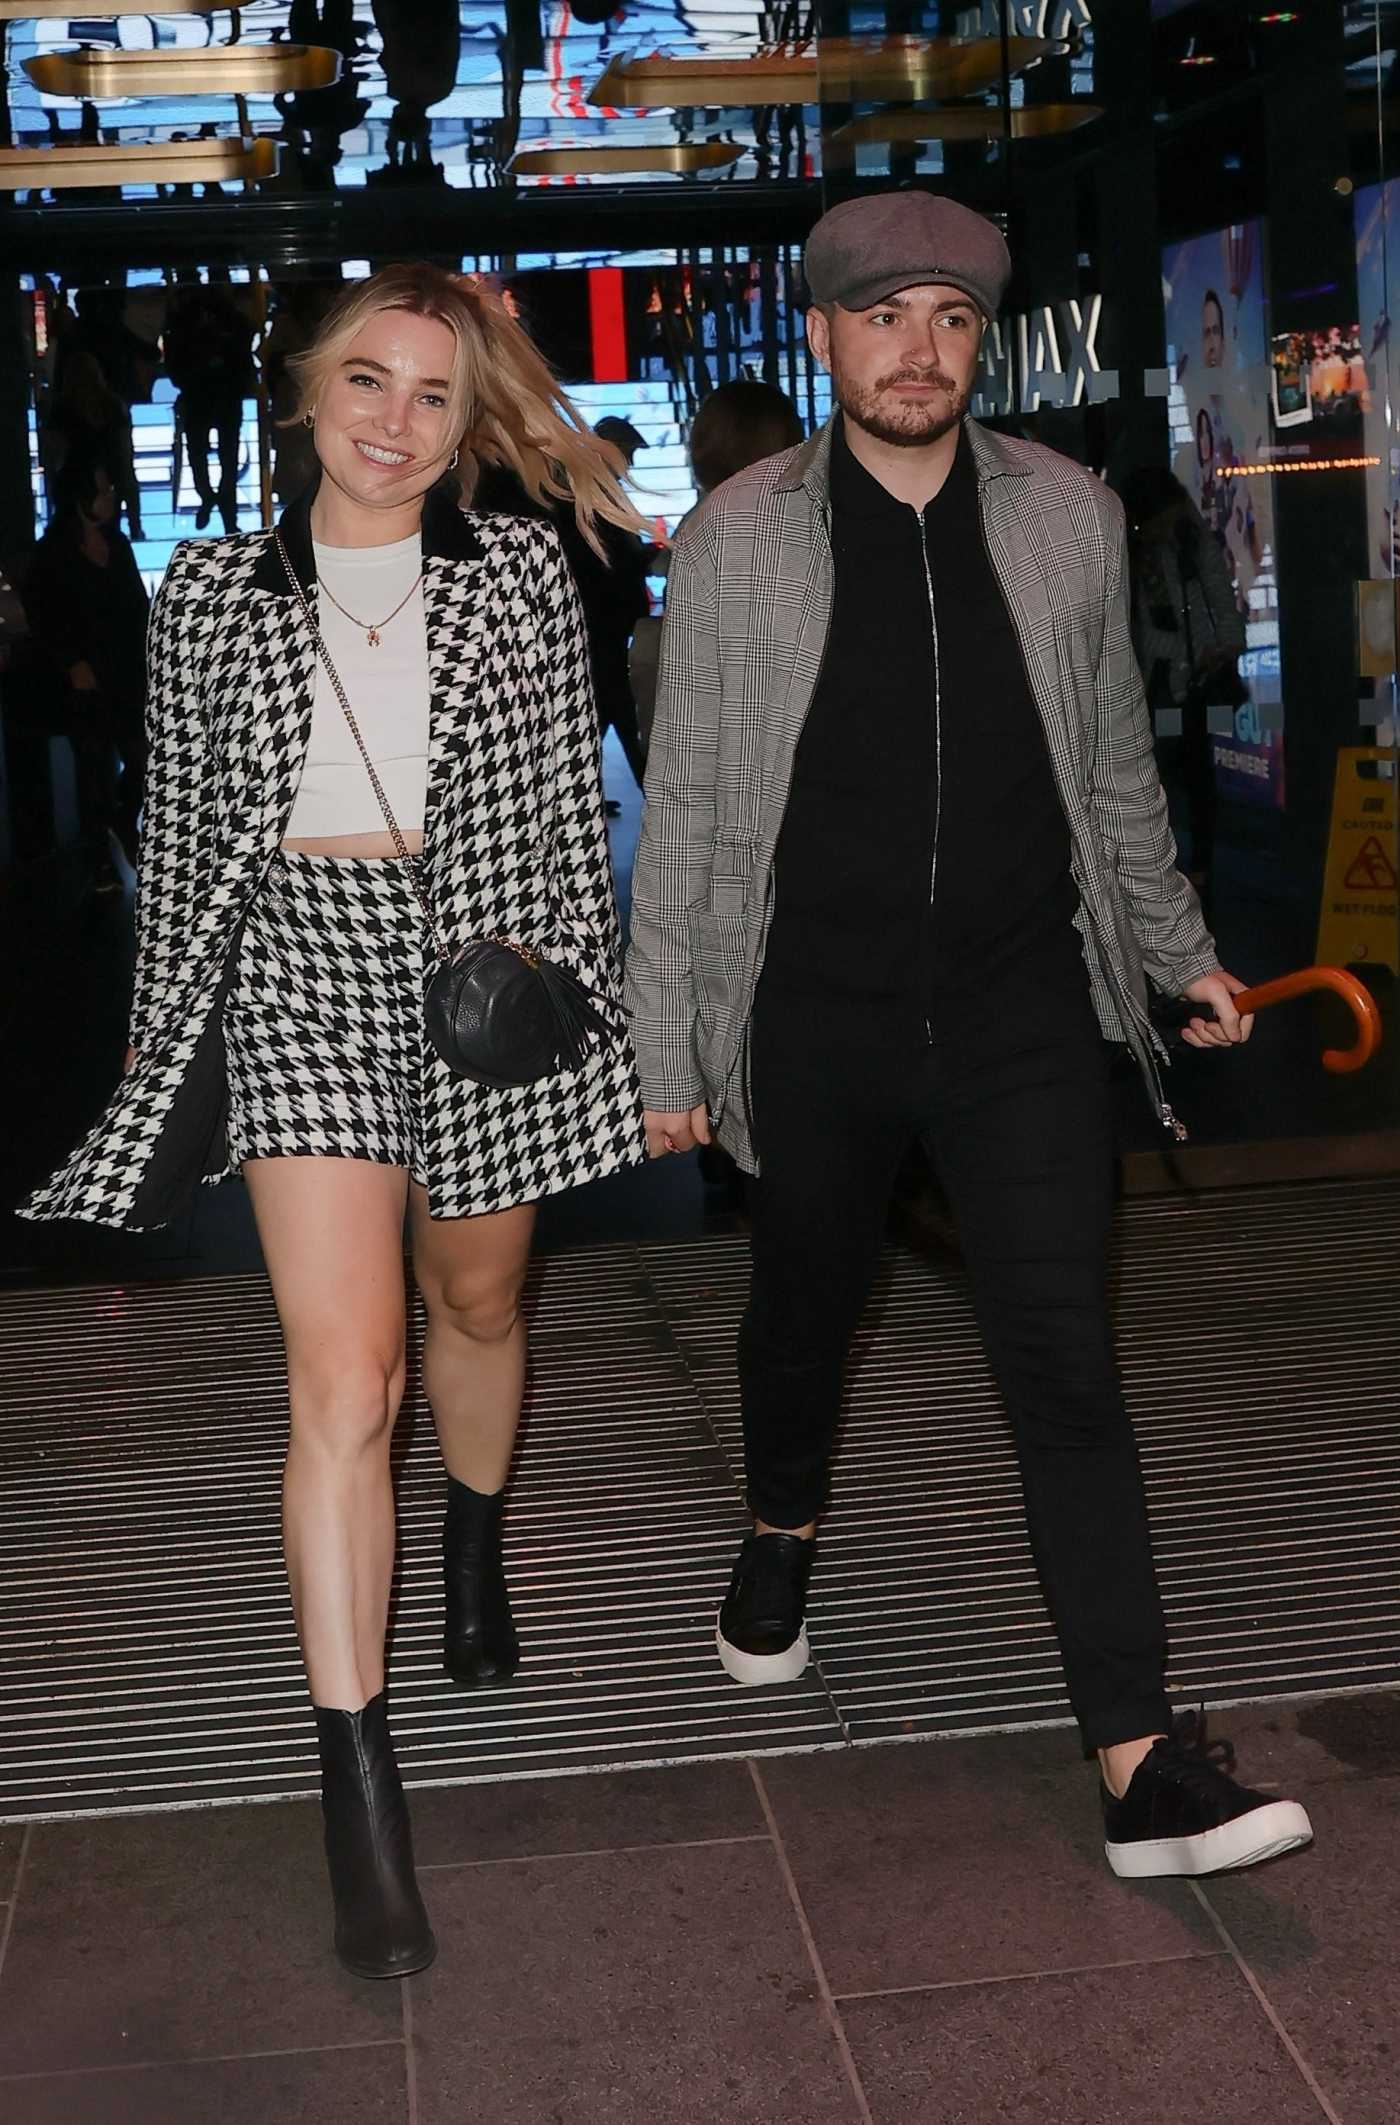 Sian Welby in a Grey Shorts Suit Holding Hands with Male Friend in London 08/09/2021